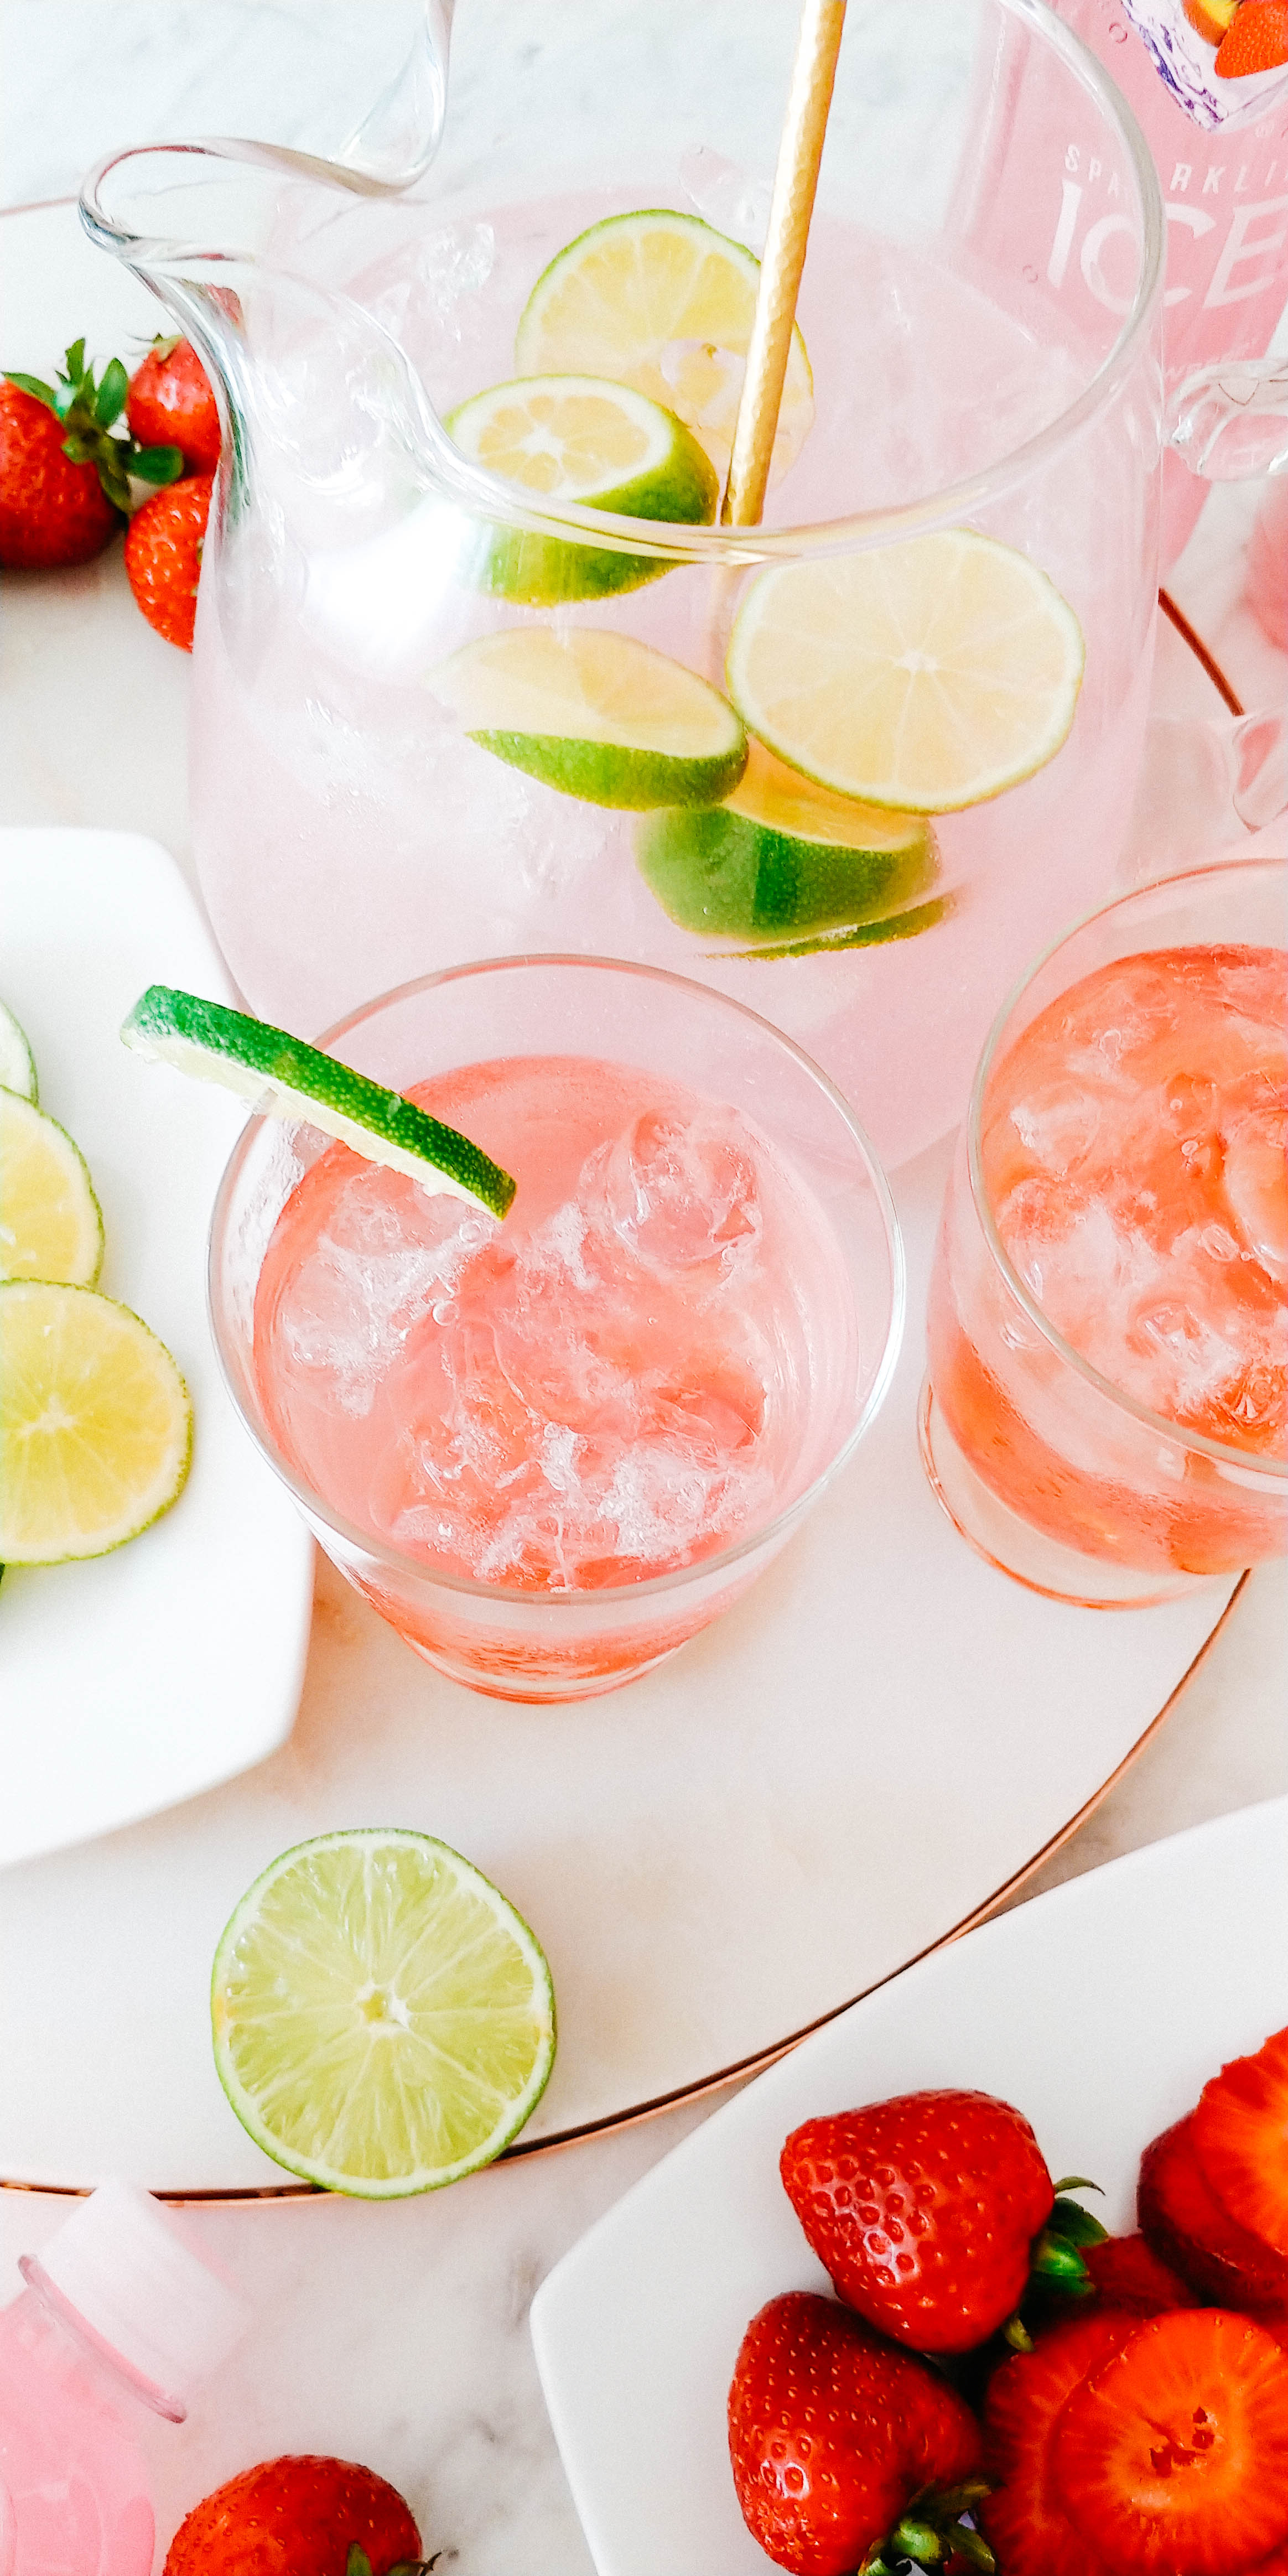 Always Creating Blog x Sparkling ICE - Easy Summer Cocktail – Sparkling ICE Strawberry Kiwi Prosecco Punch